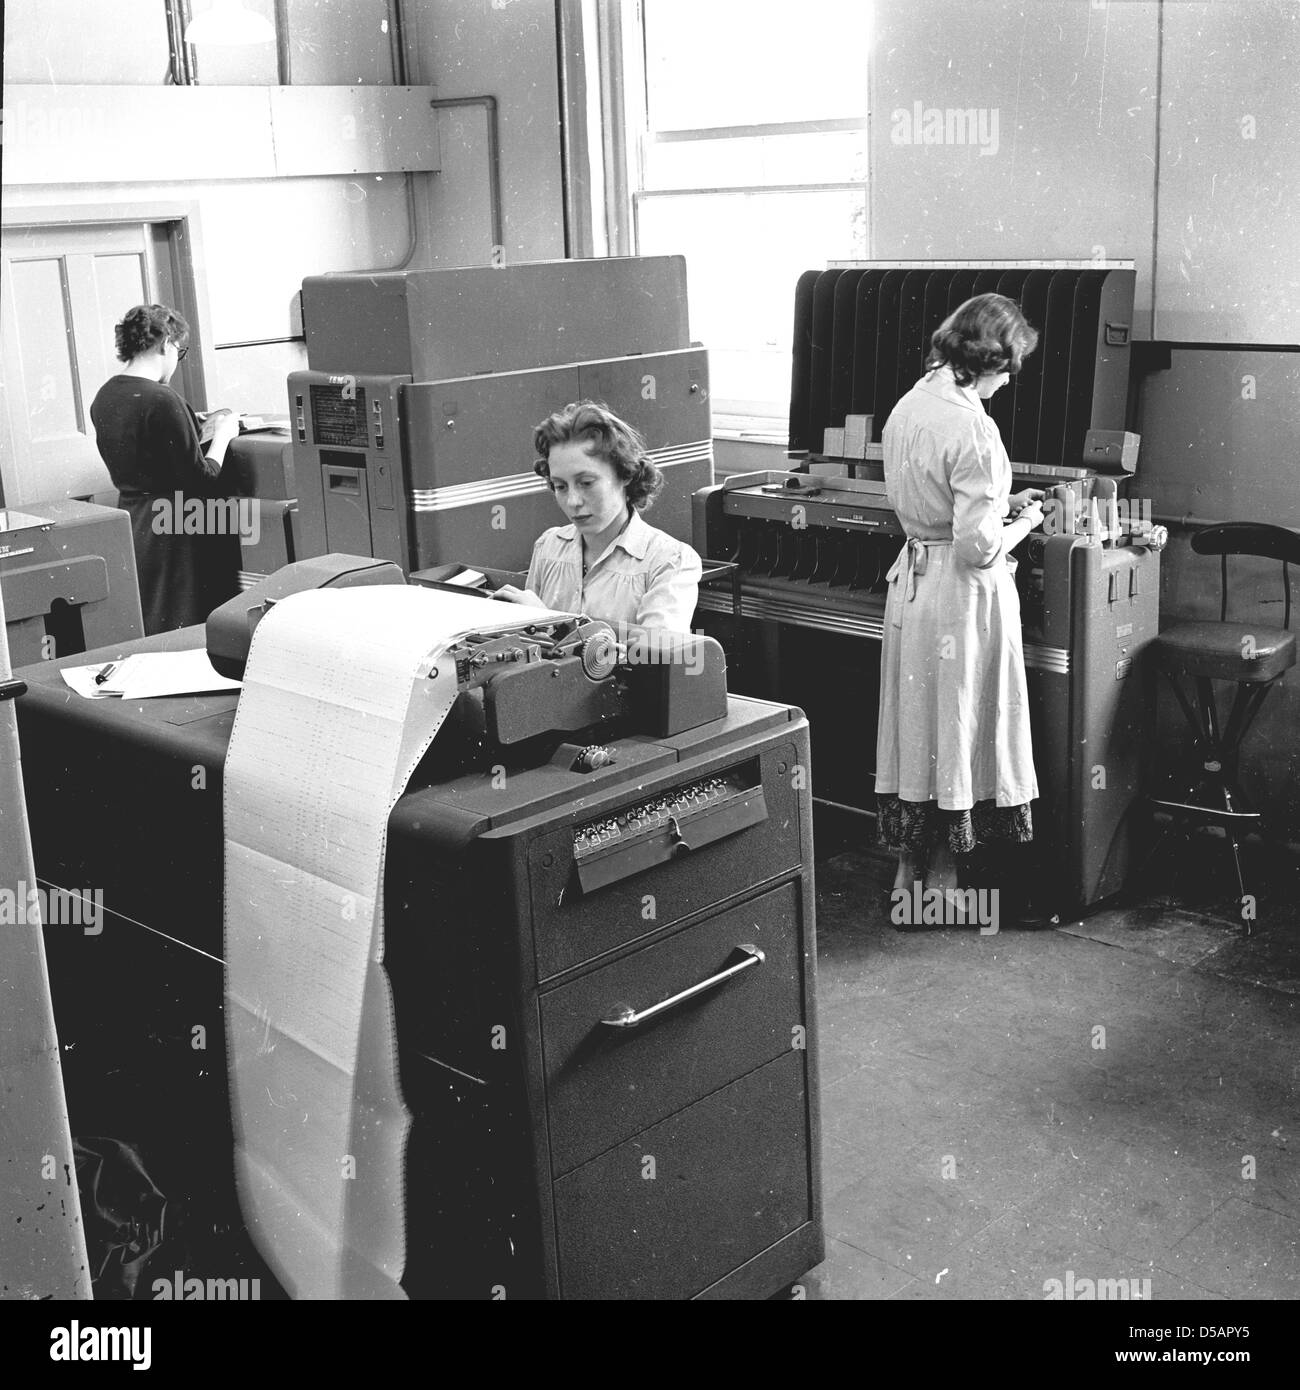 Historical Picture From 1950s Three Young Women Working